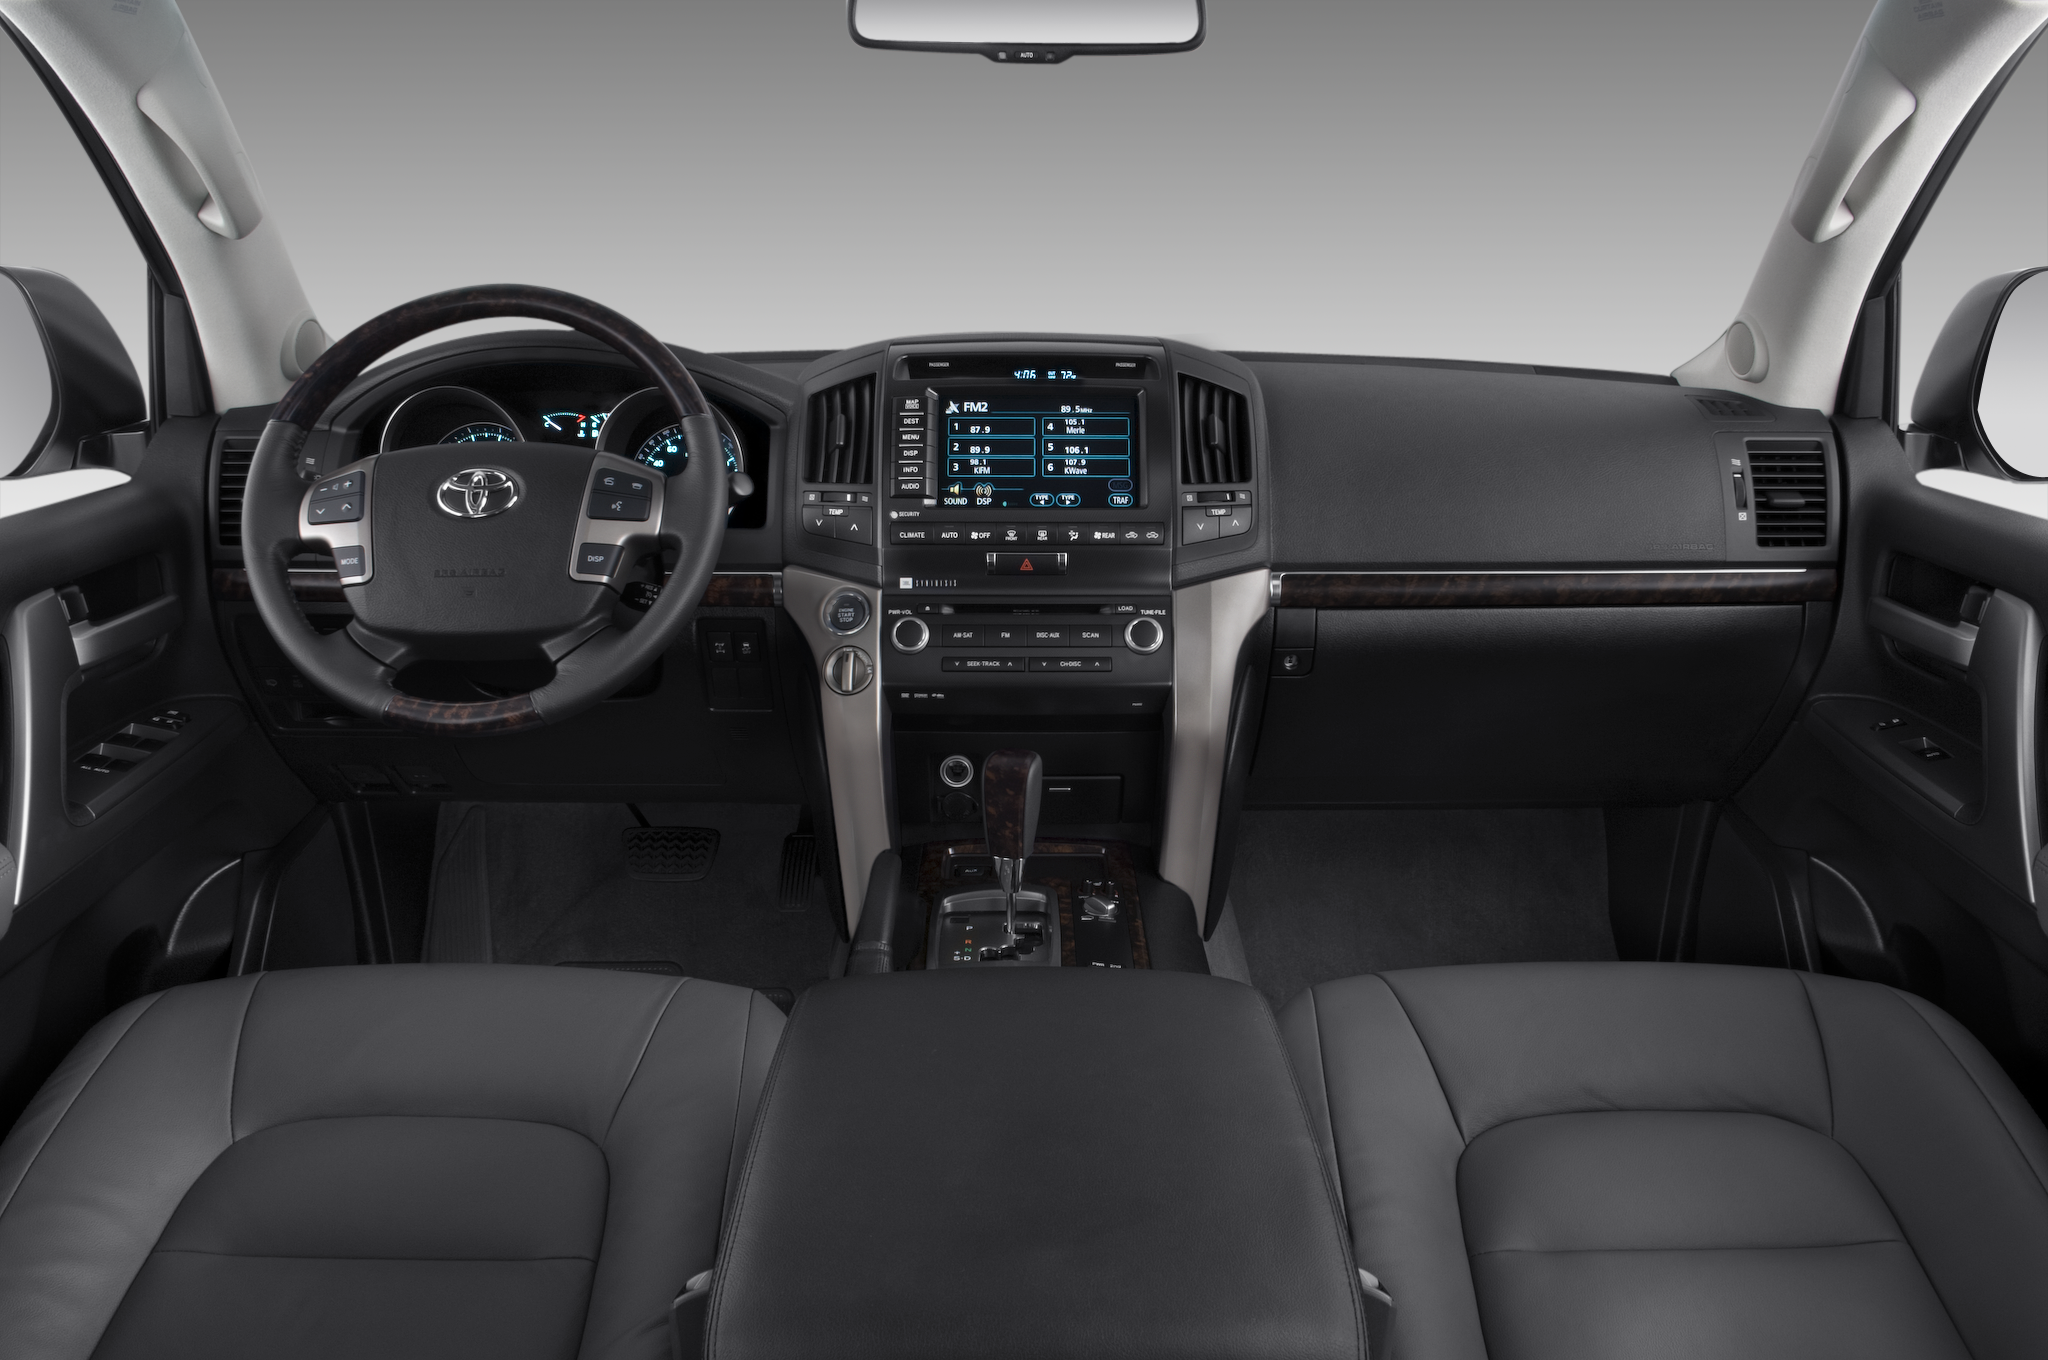 Beige Interior Banished from Toyota Land Cruiser in Latest ...